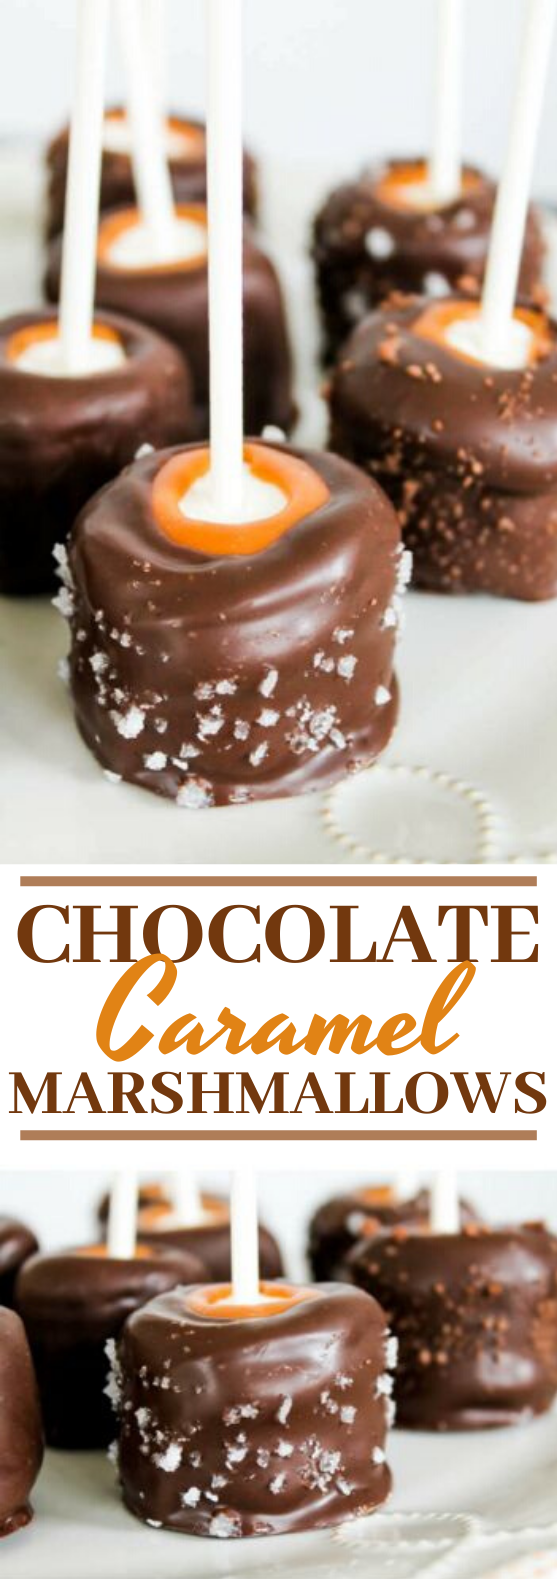 Chocolate Caramel Marshmallows #desserts #chocolate #candy #gifts #thanksgiving